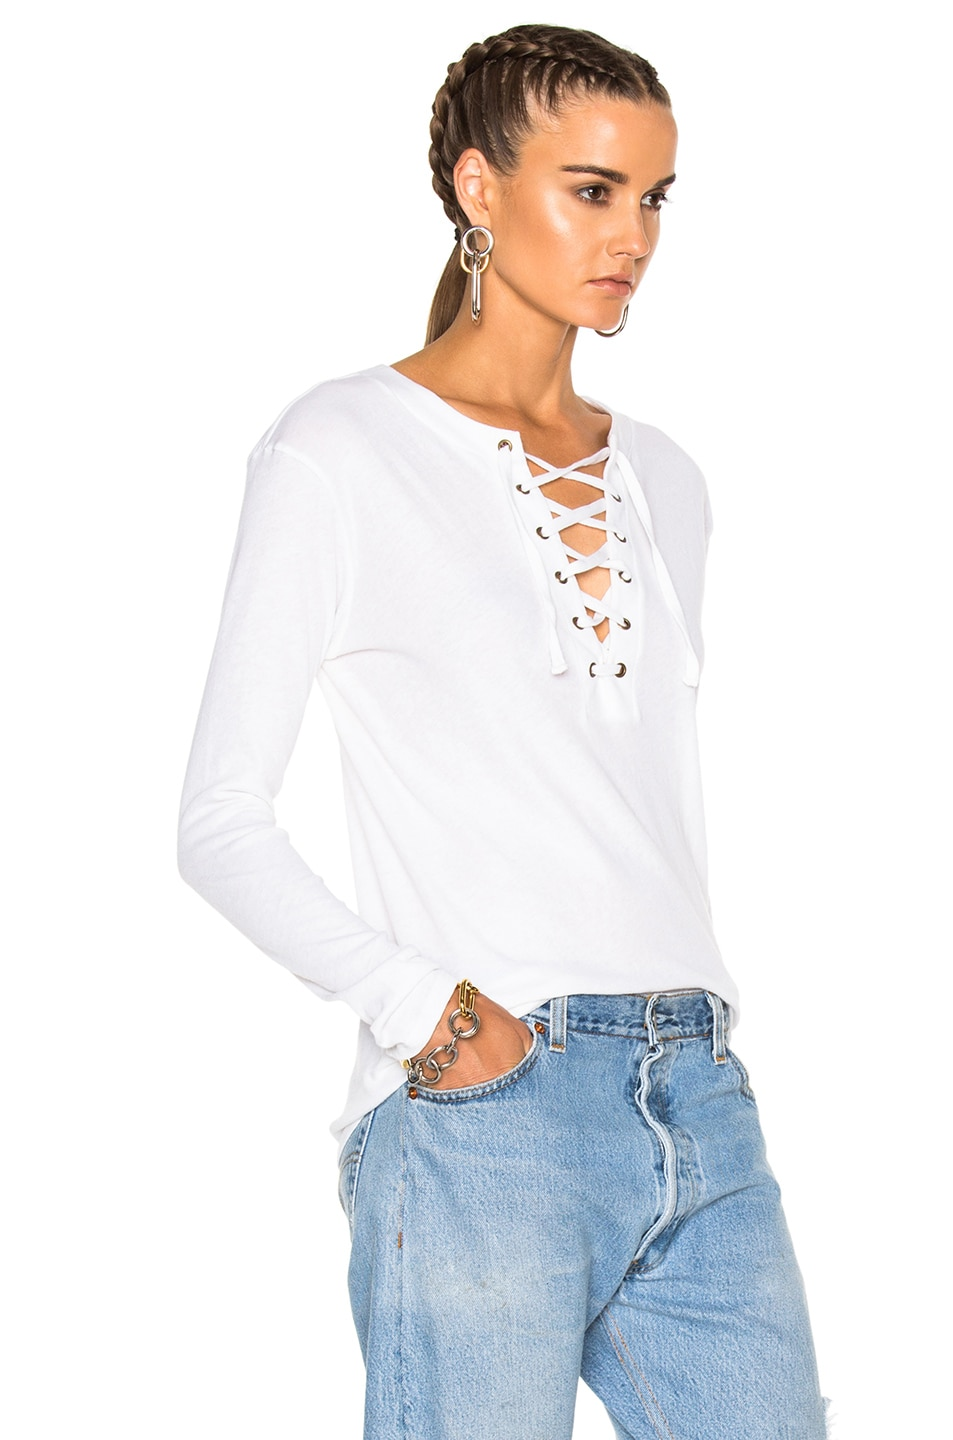 Image 3 of Enza Costa Lace Up Top in Black in White 64048a796